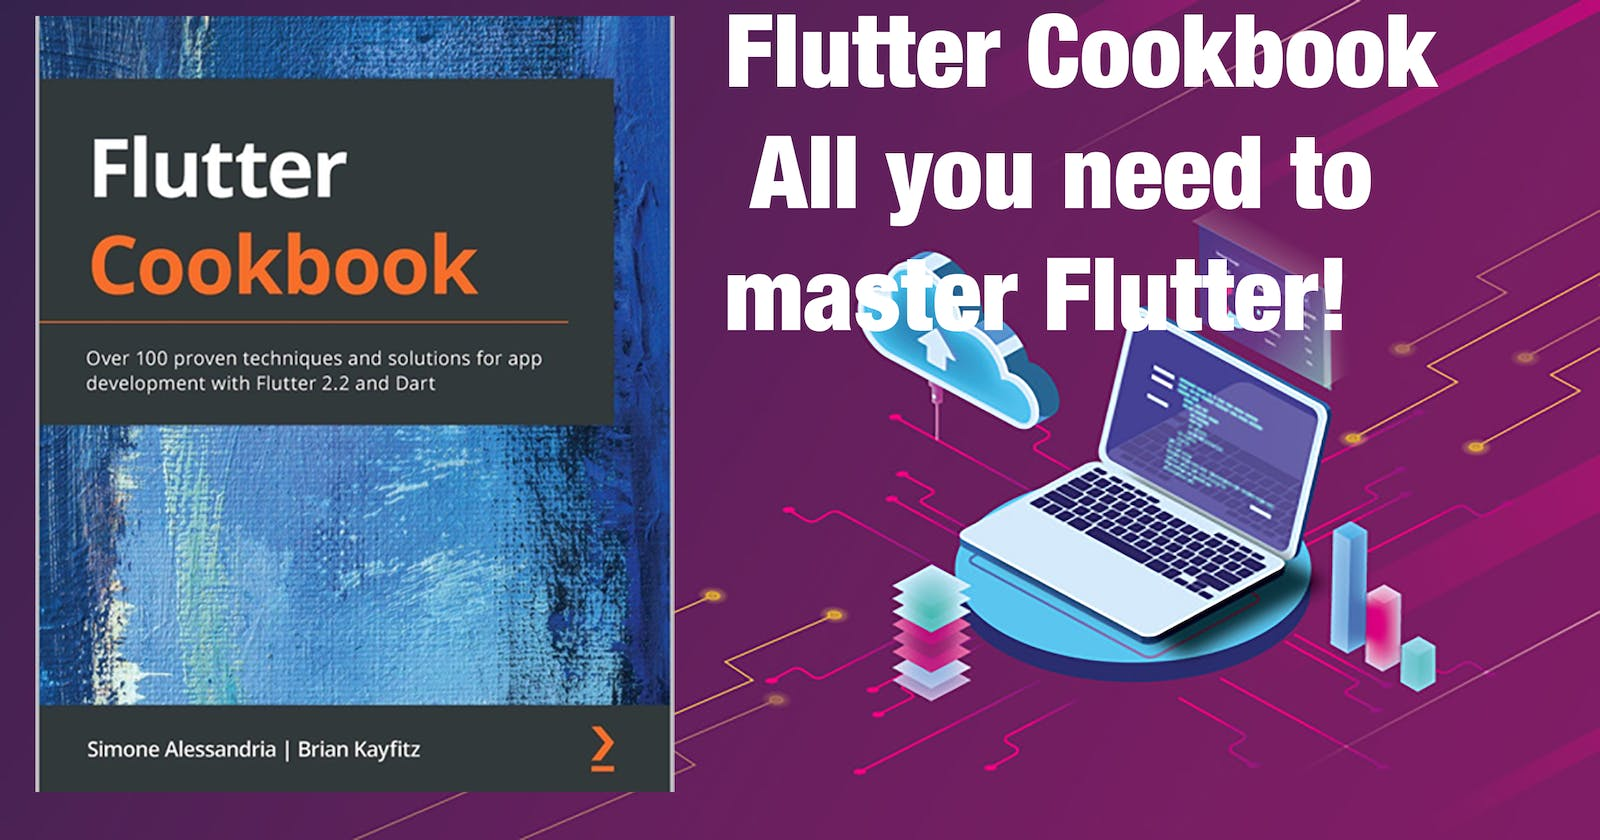 Flutter Cookbook: Over 100 proven techniques and solutions for app development with Flutter 2.2 and Dart.